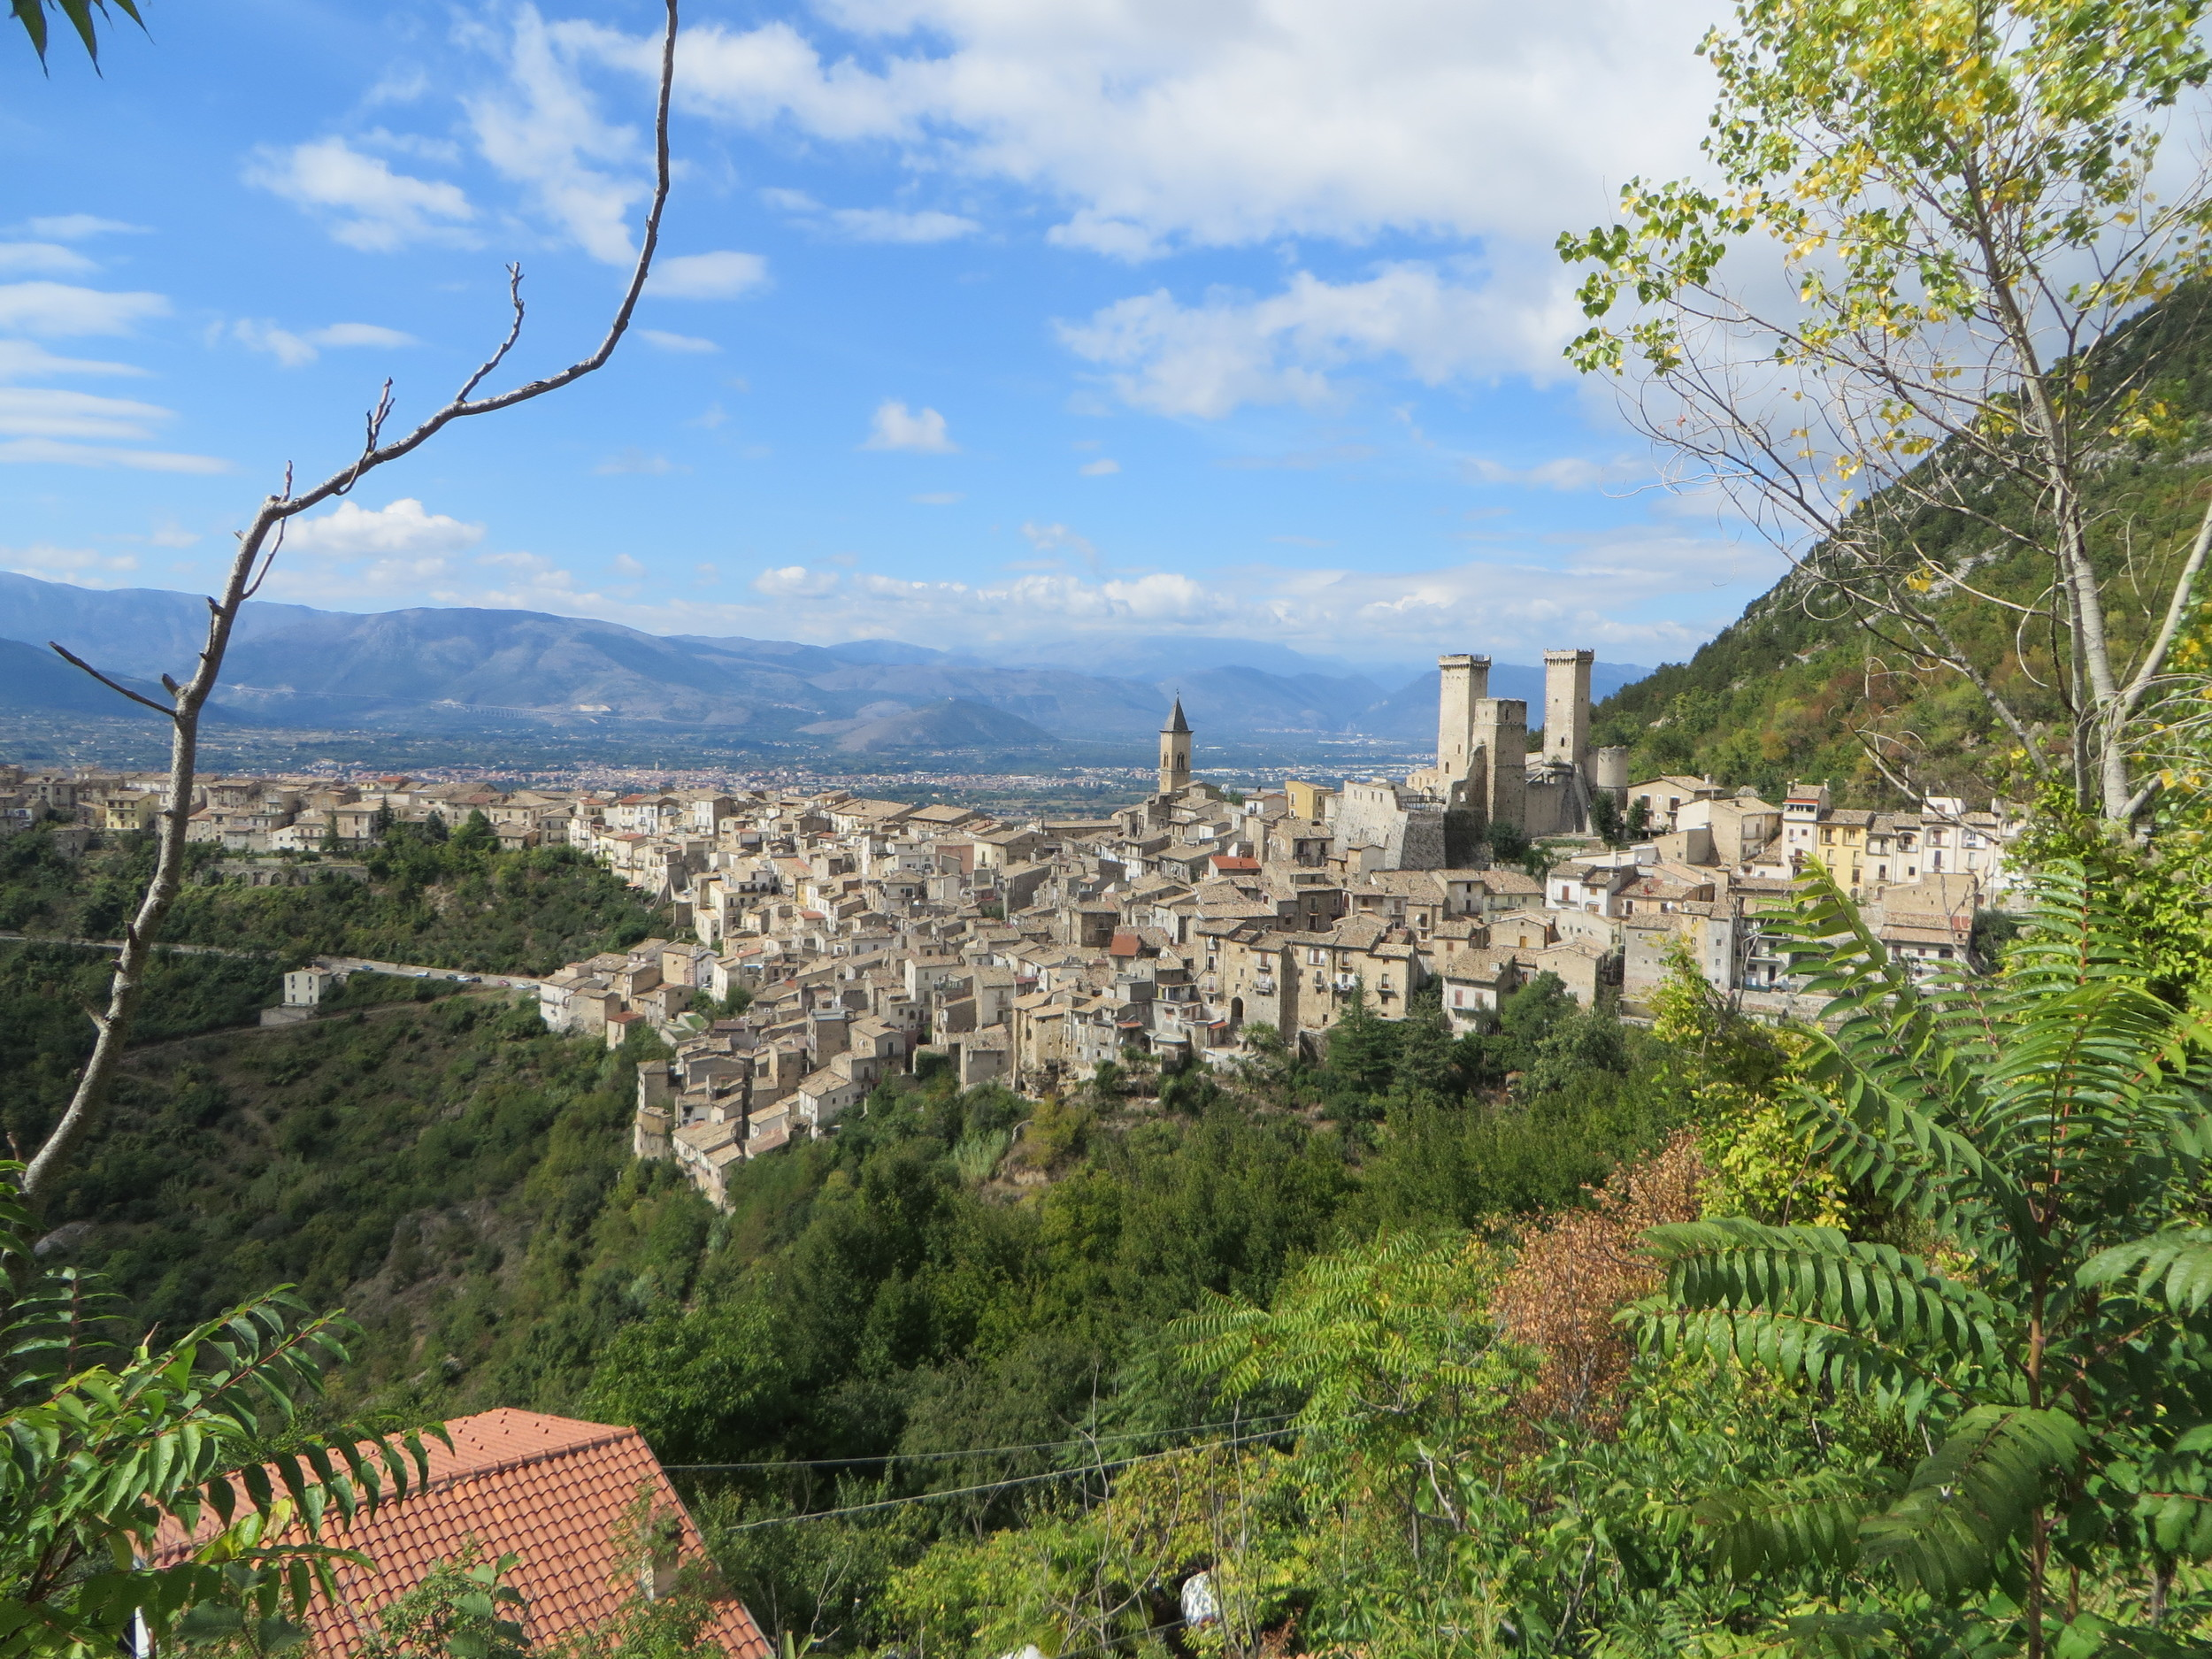 Pacentro, a medieval village in Abruzzo region of Italy